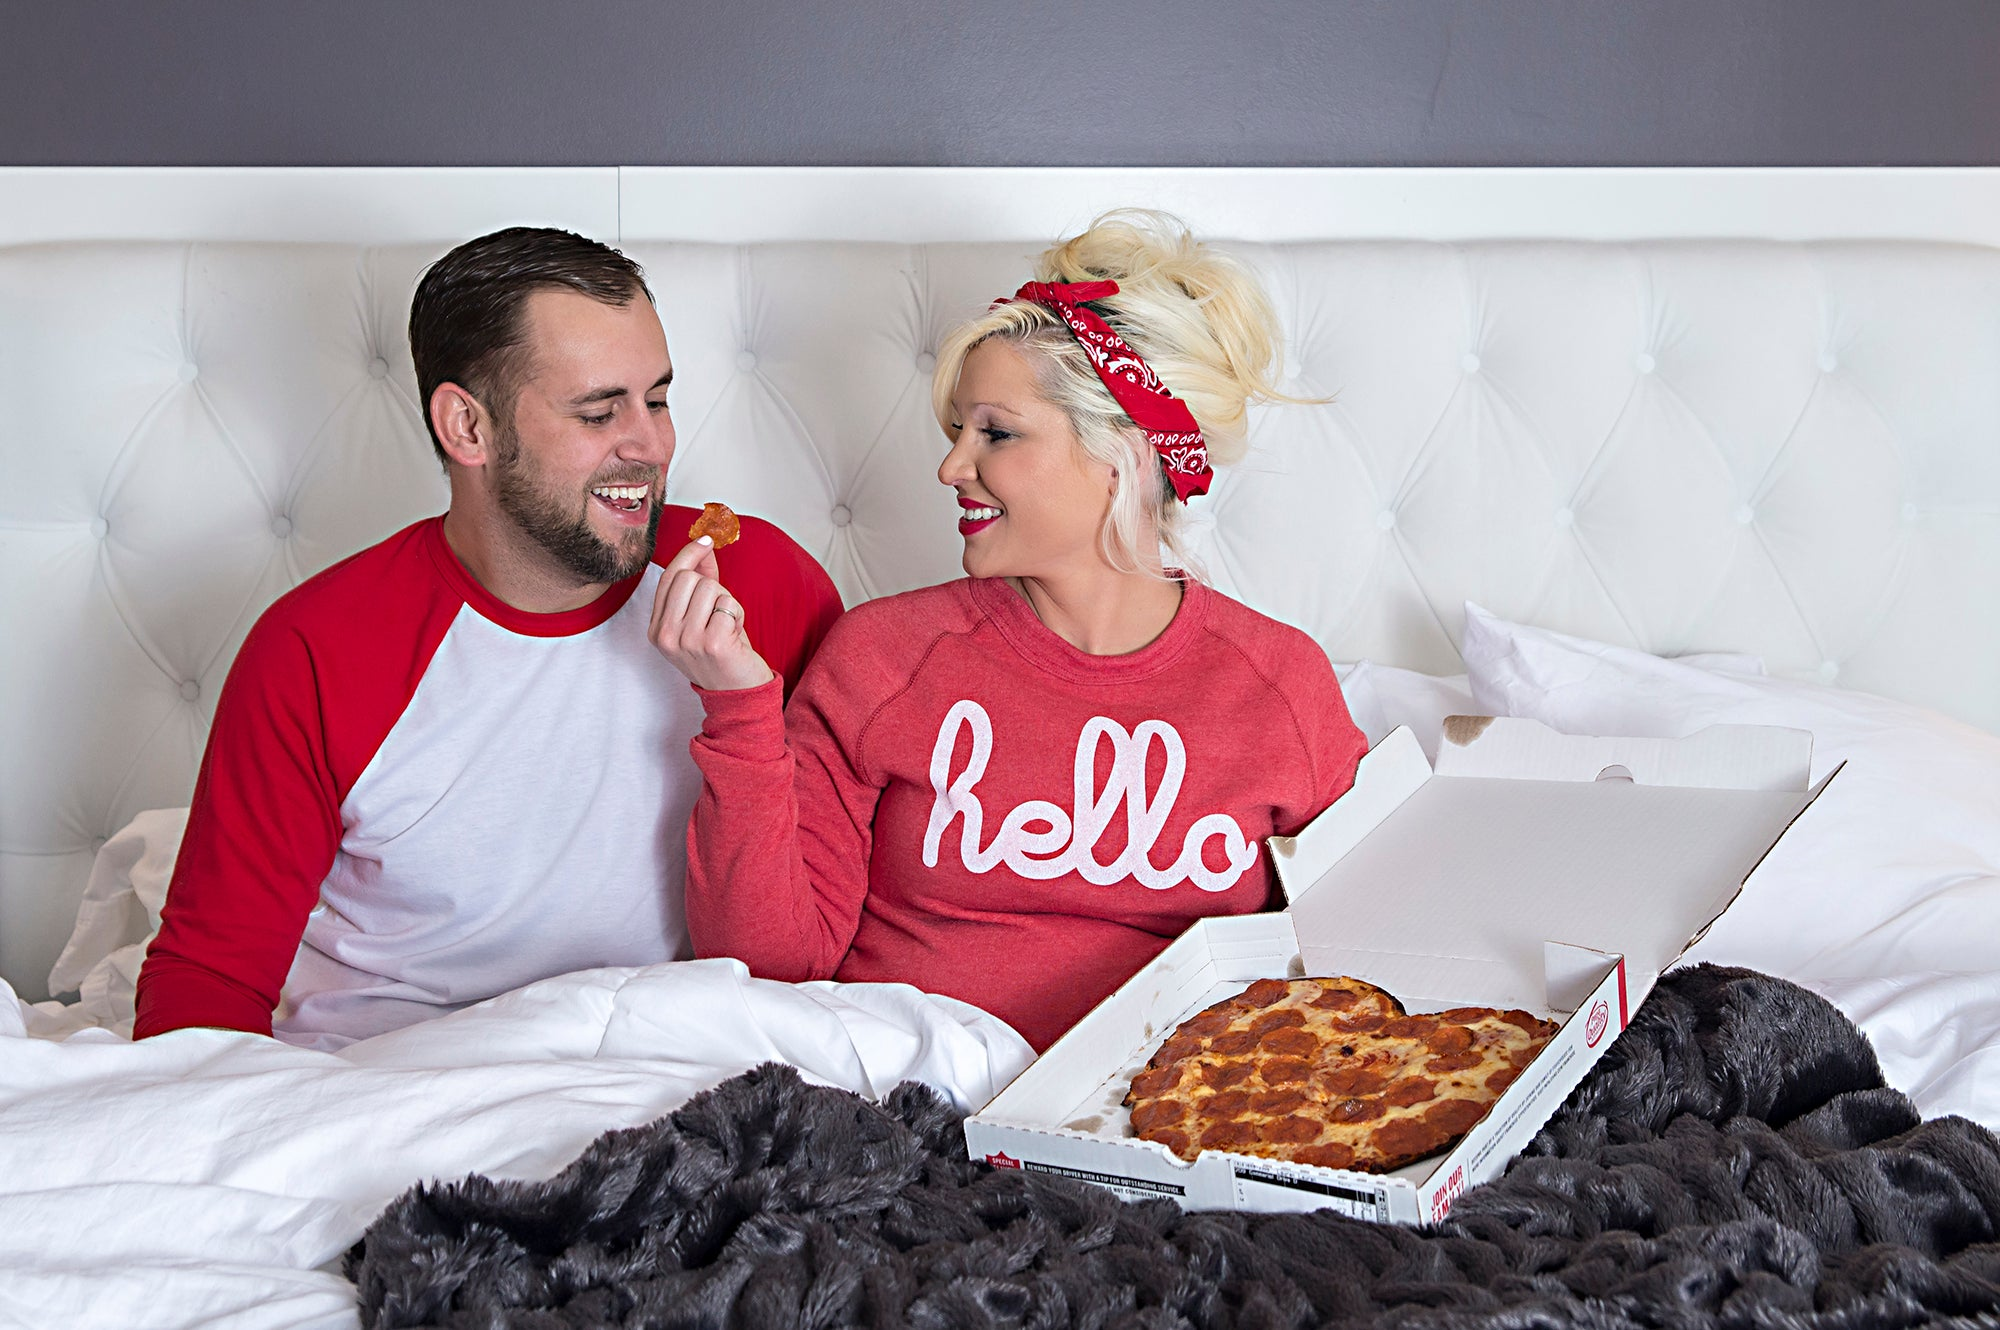 You've got a pizza my heart. Papa John's Valentine's Day heart-shaped pizza photo shoot